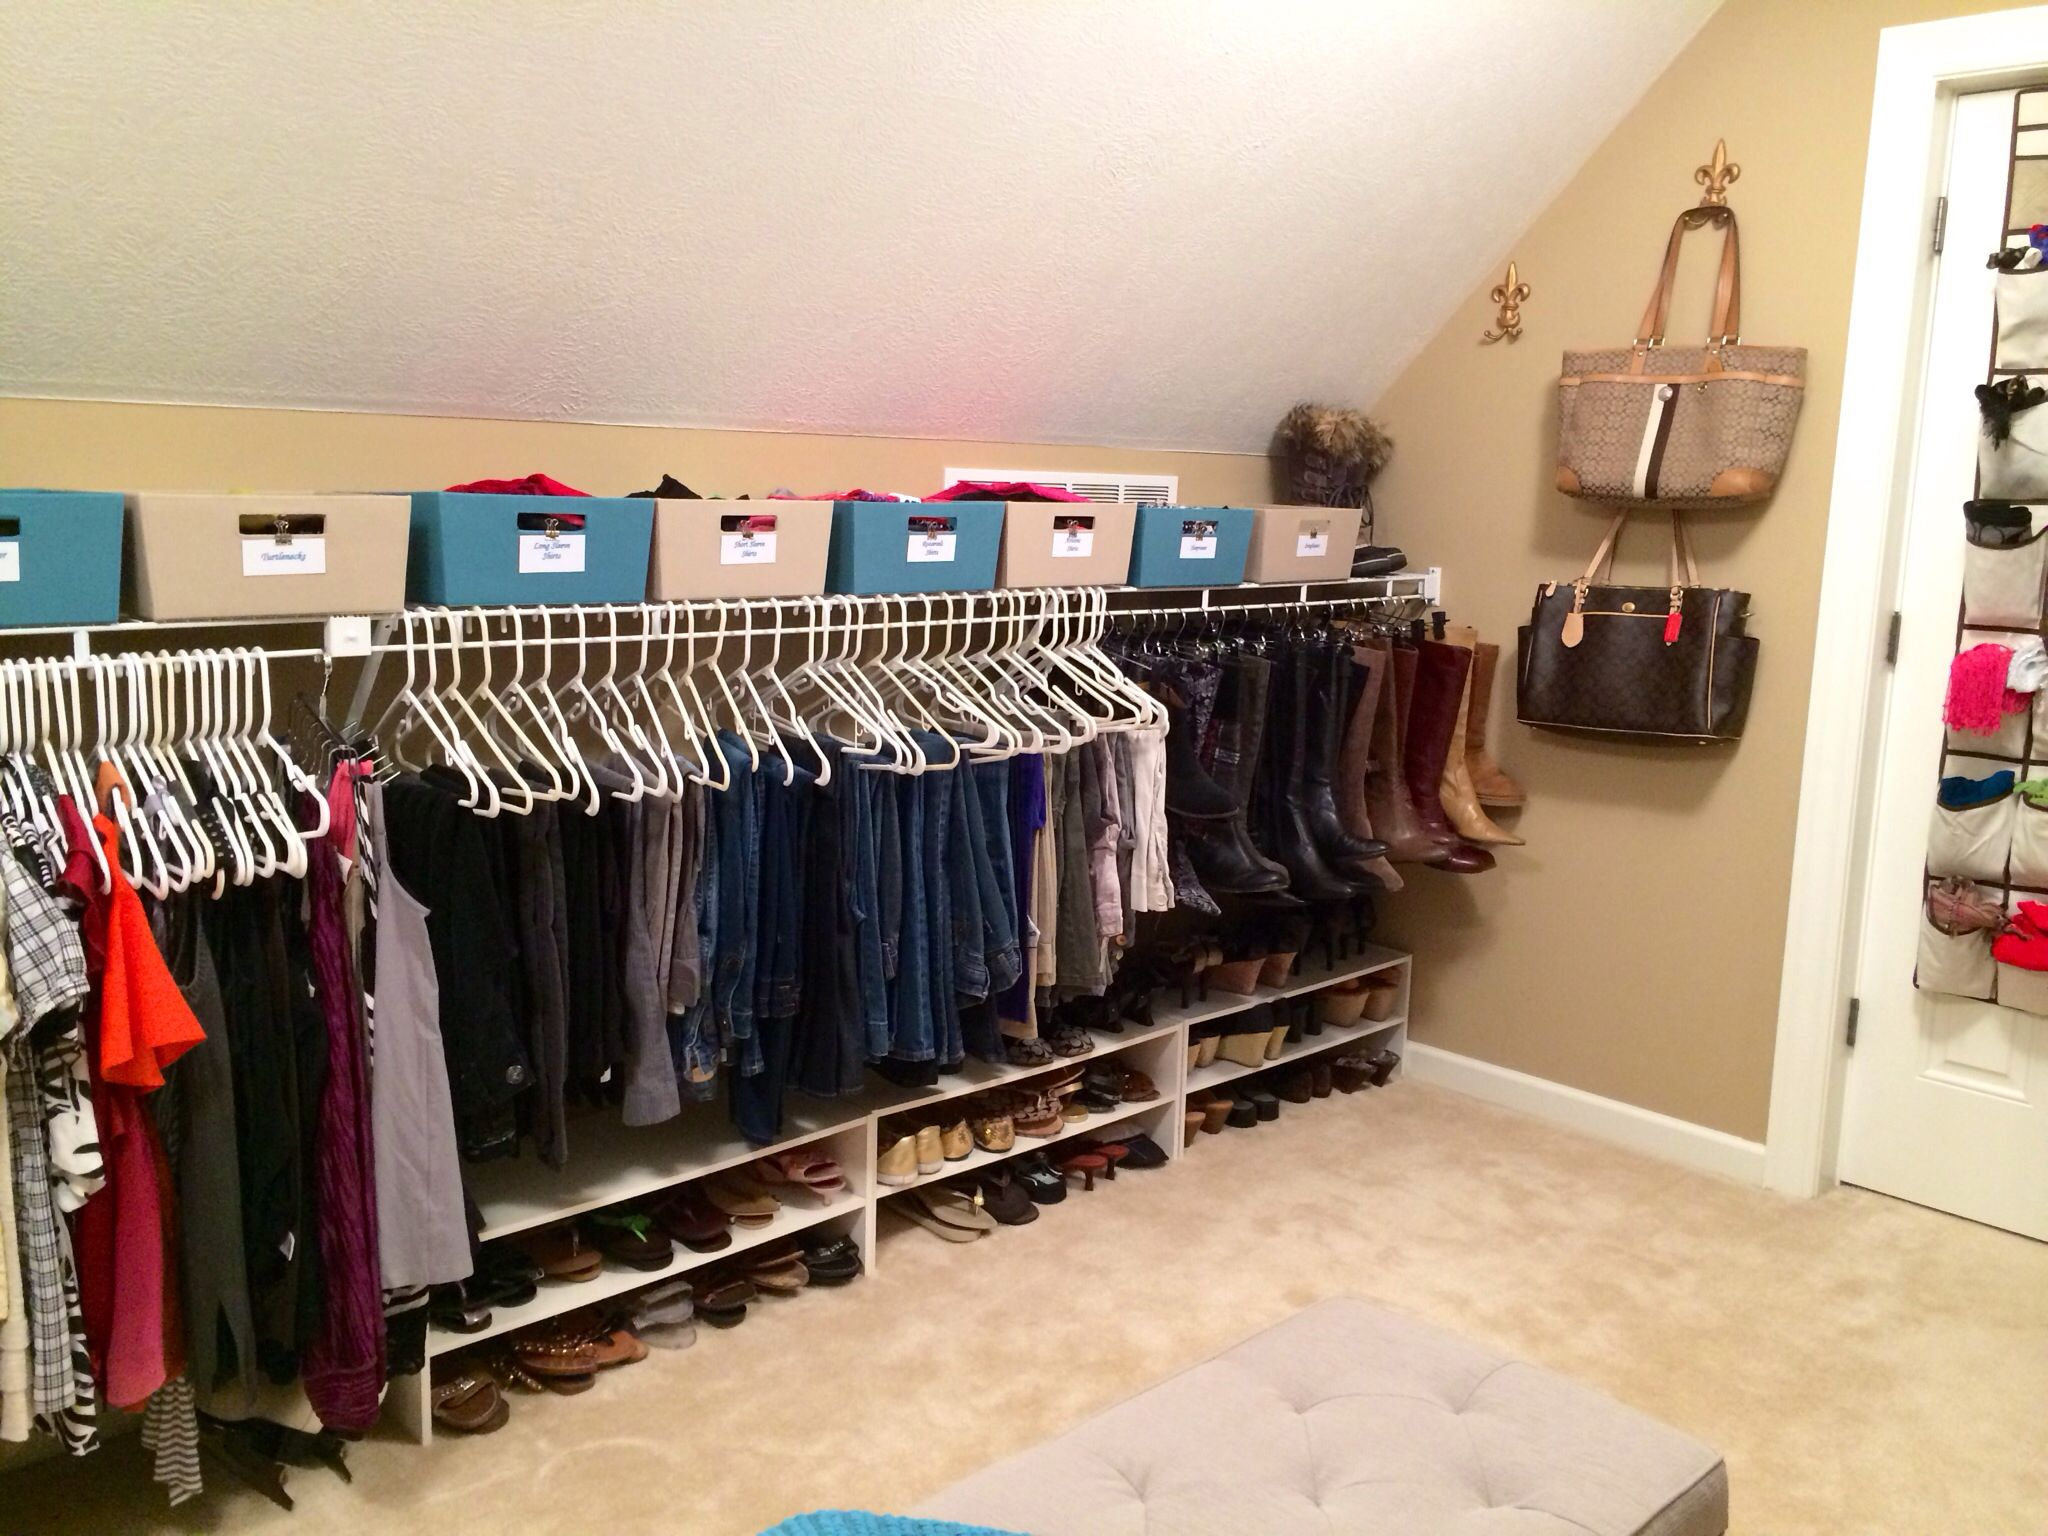 Room Above Garage Converted To Closet Skirt Hangers Used